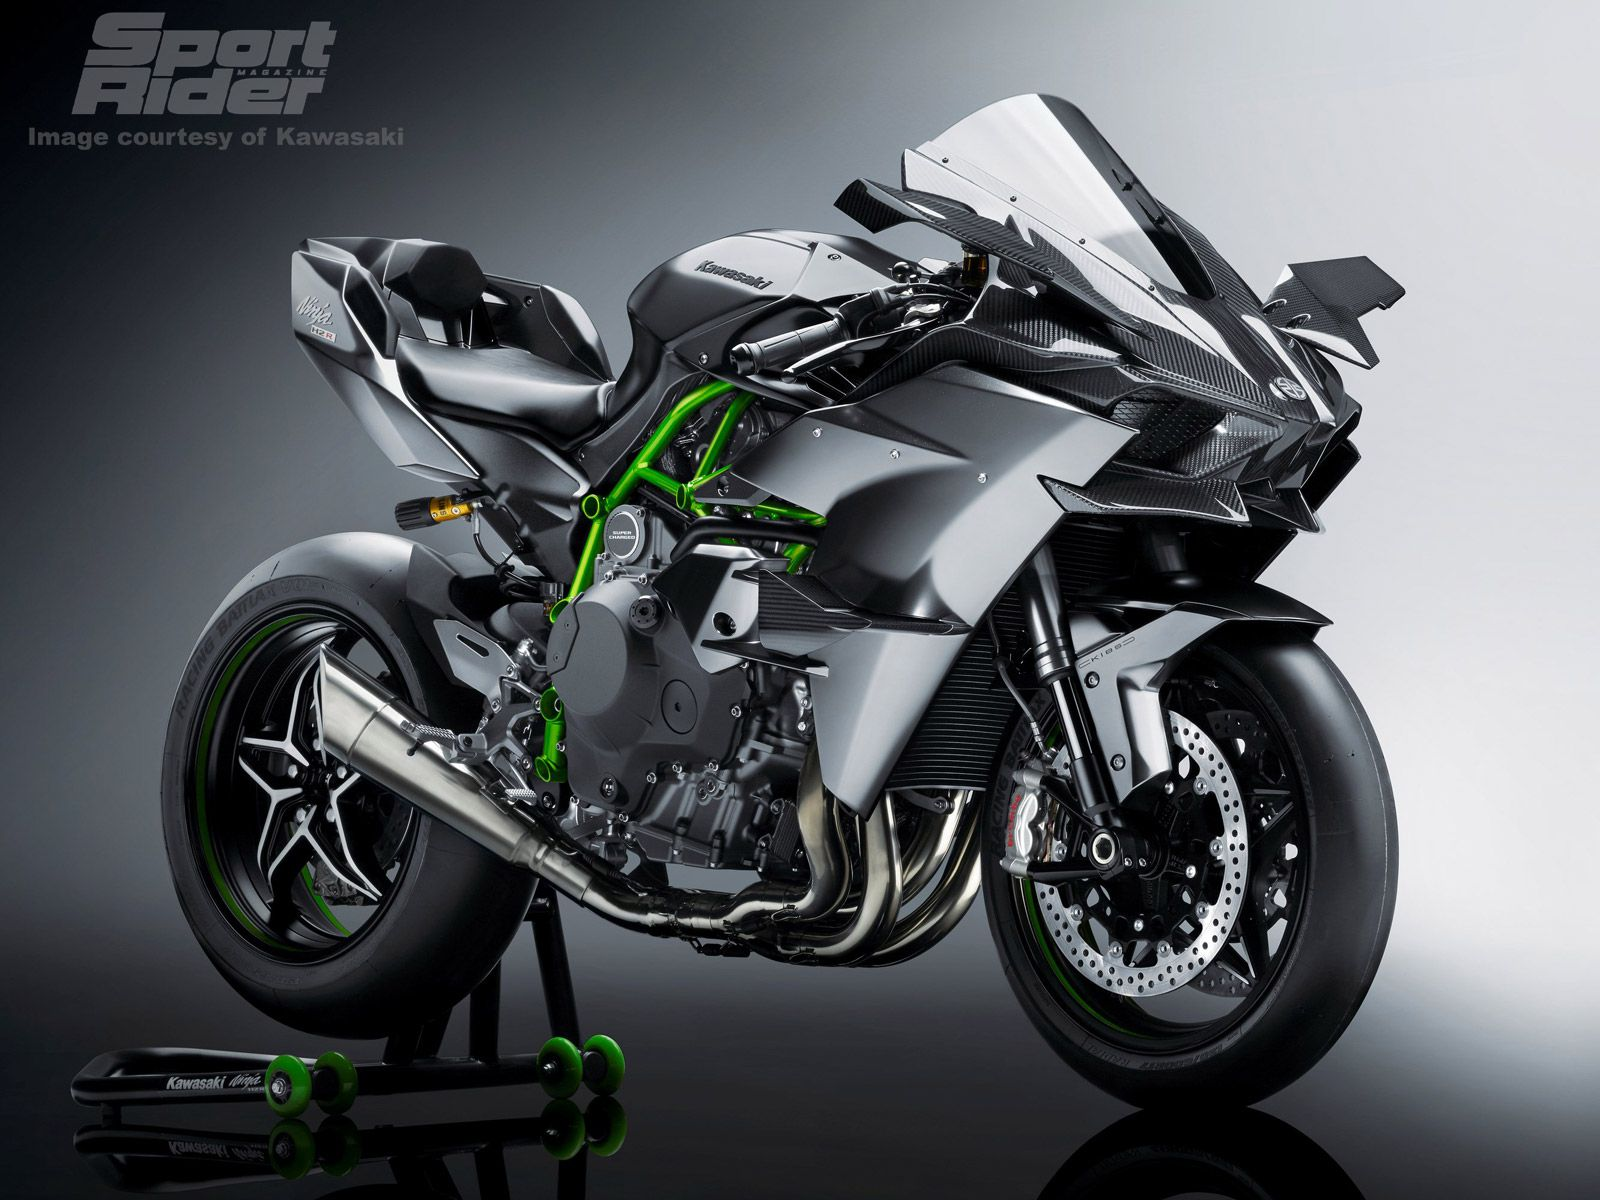 Kawasaki S Ninja H2 And H2r Go Even More High Tech For 2017 With Video Cycle World